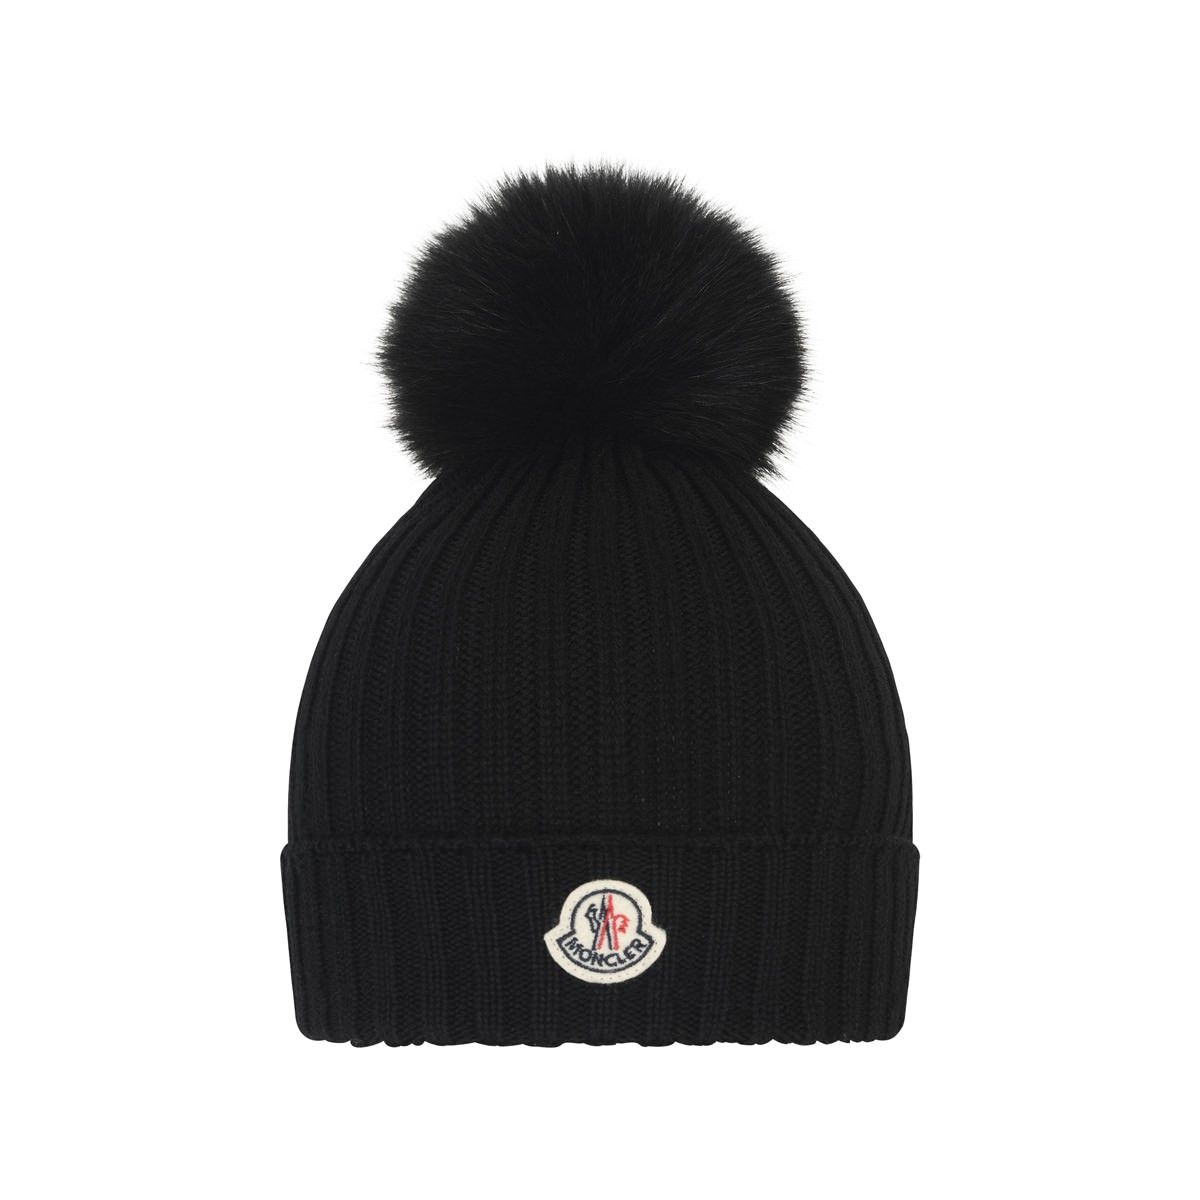 02100c3ee25c2 Moncler Black Wool Knitted Hat With Fur Pom Pom